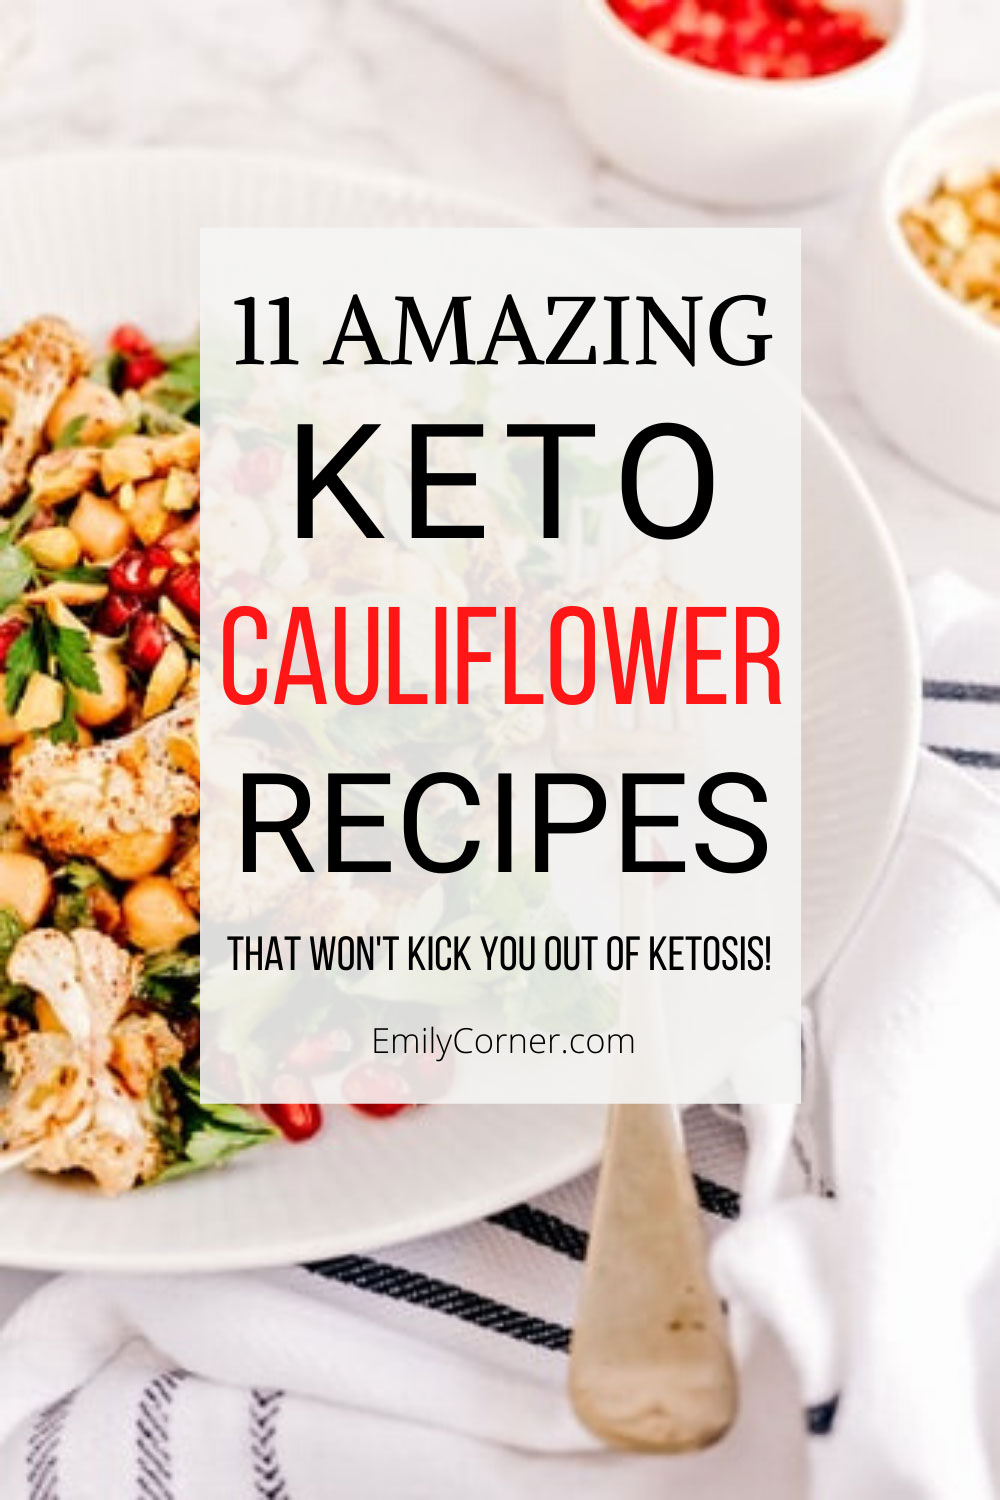 keto cauliflower recipes